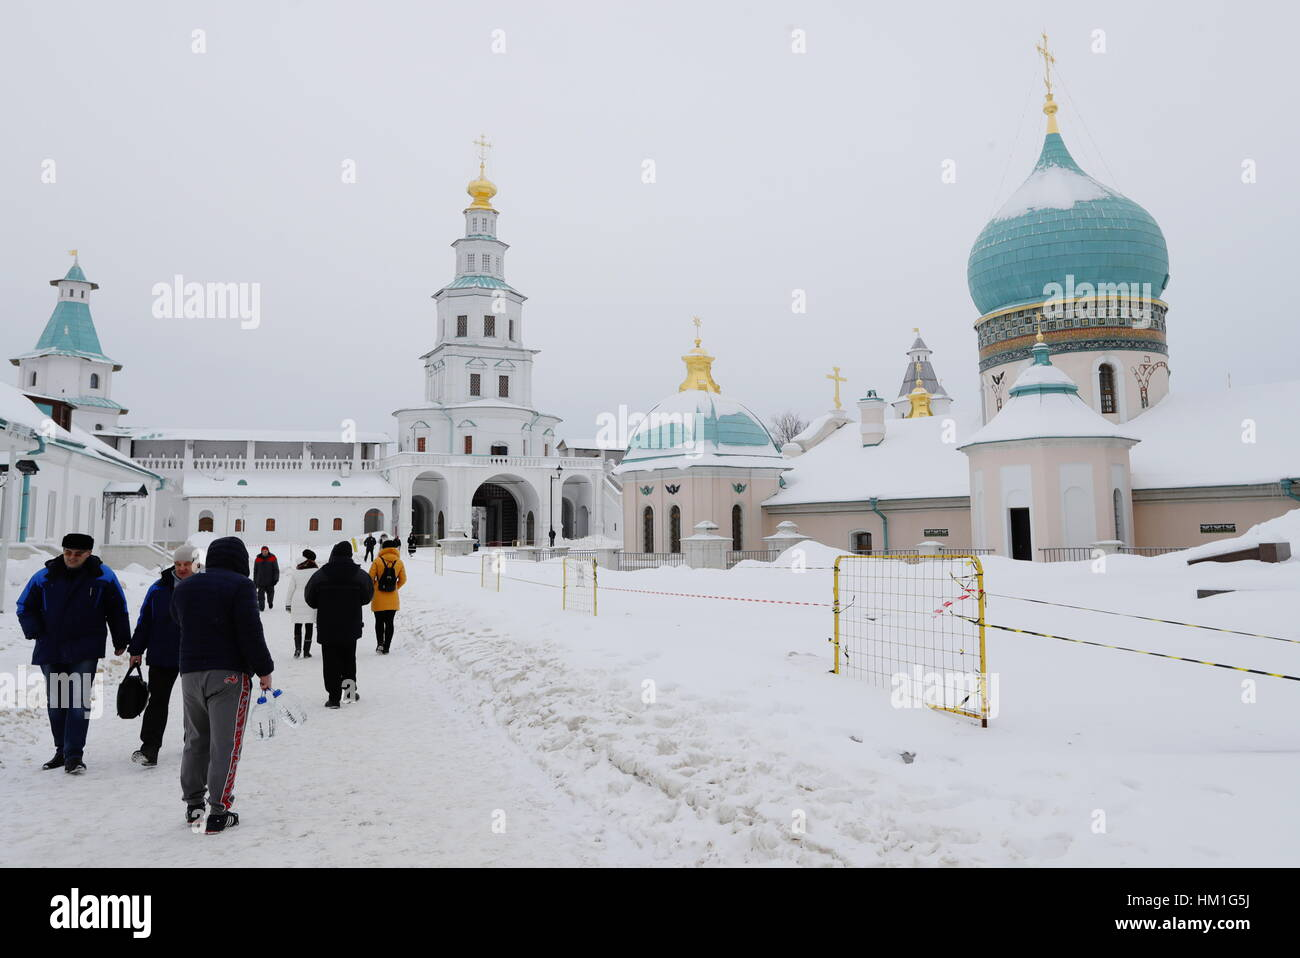 Moscow Region, Russia. 31st Jan, 2017. The New Jerusalem Monastery in the town of Istra. Credit: Mikhail Japaridze/TASS/Alamy Stock Photo